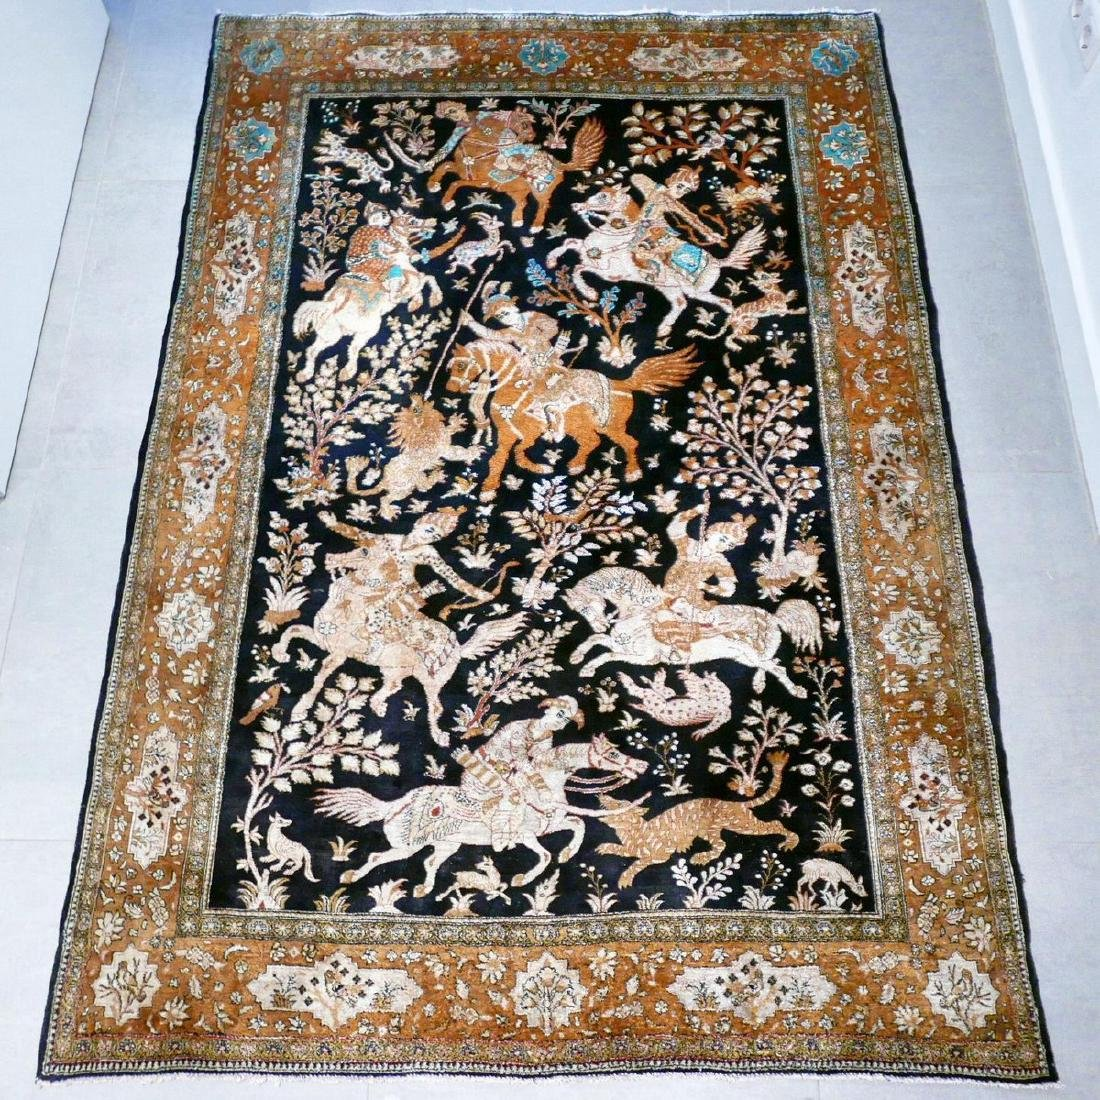 Hand Knotted Silk Hunting Scene Qum Rug 6.3x4.1